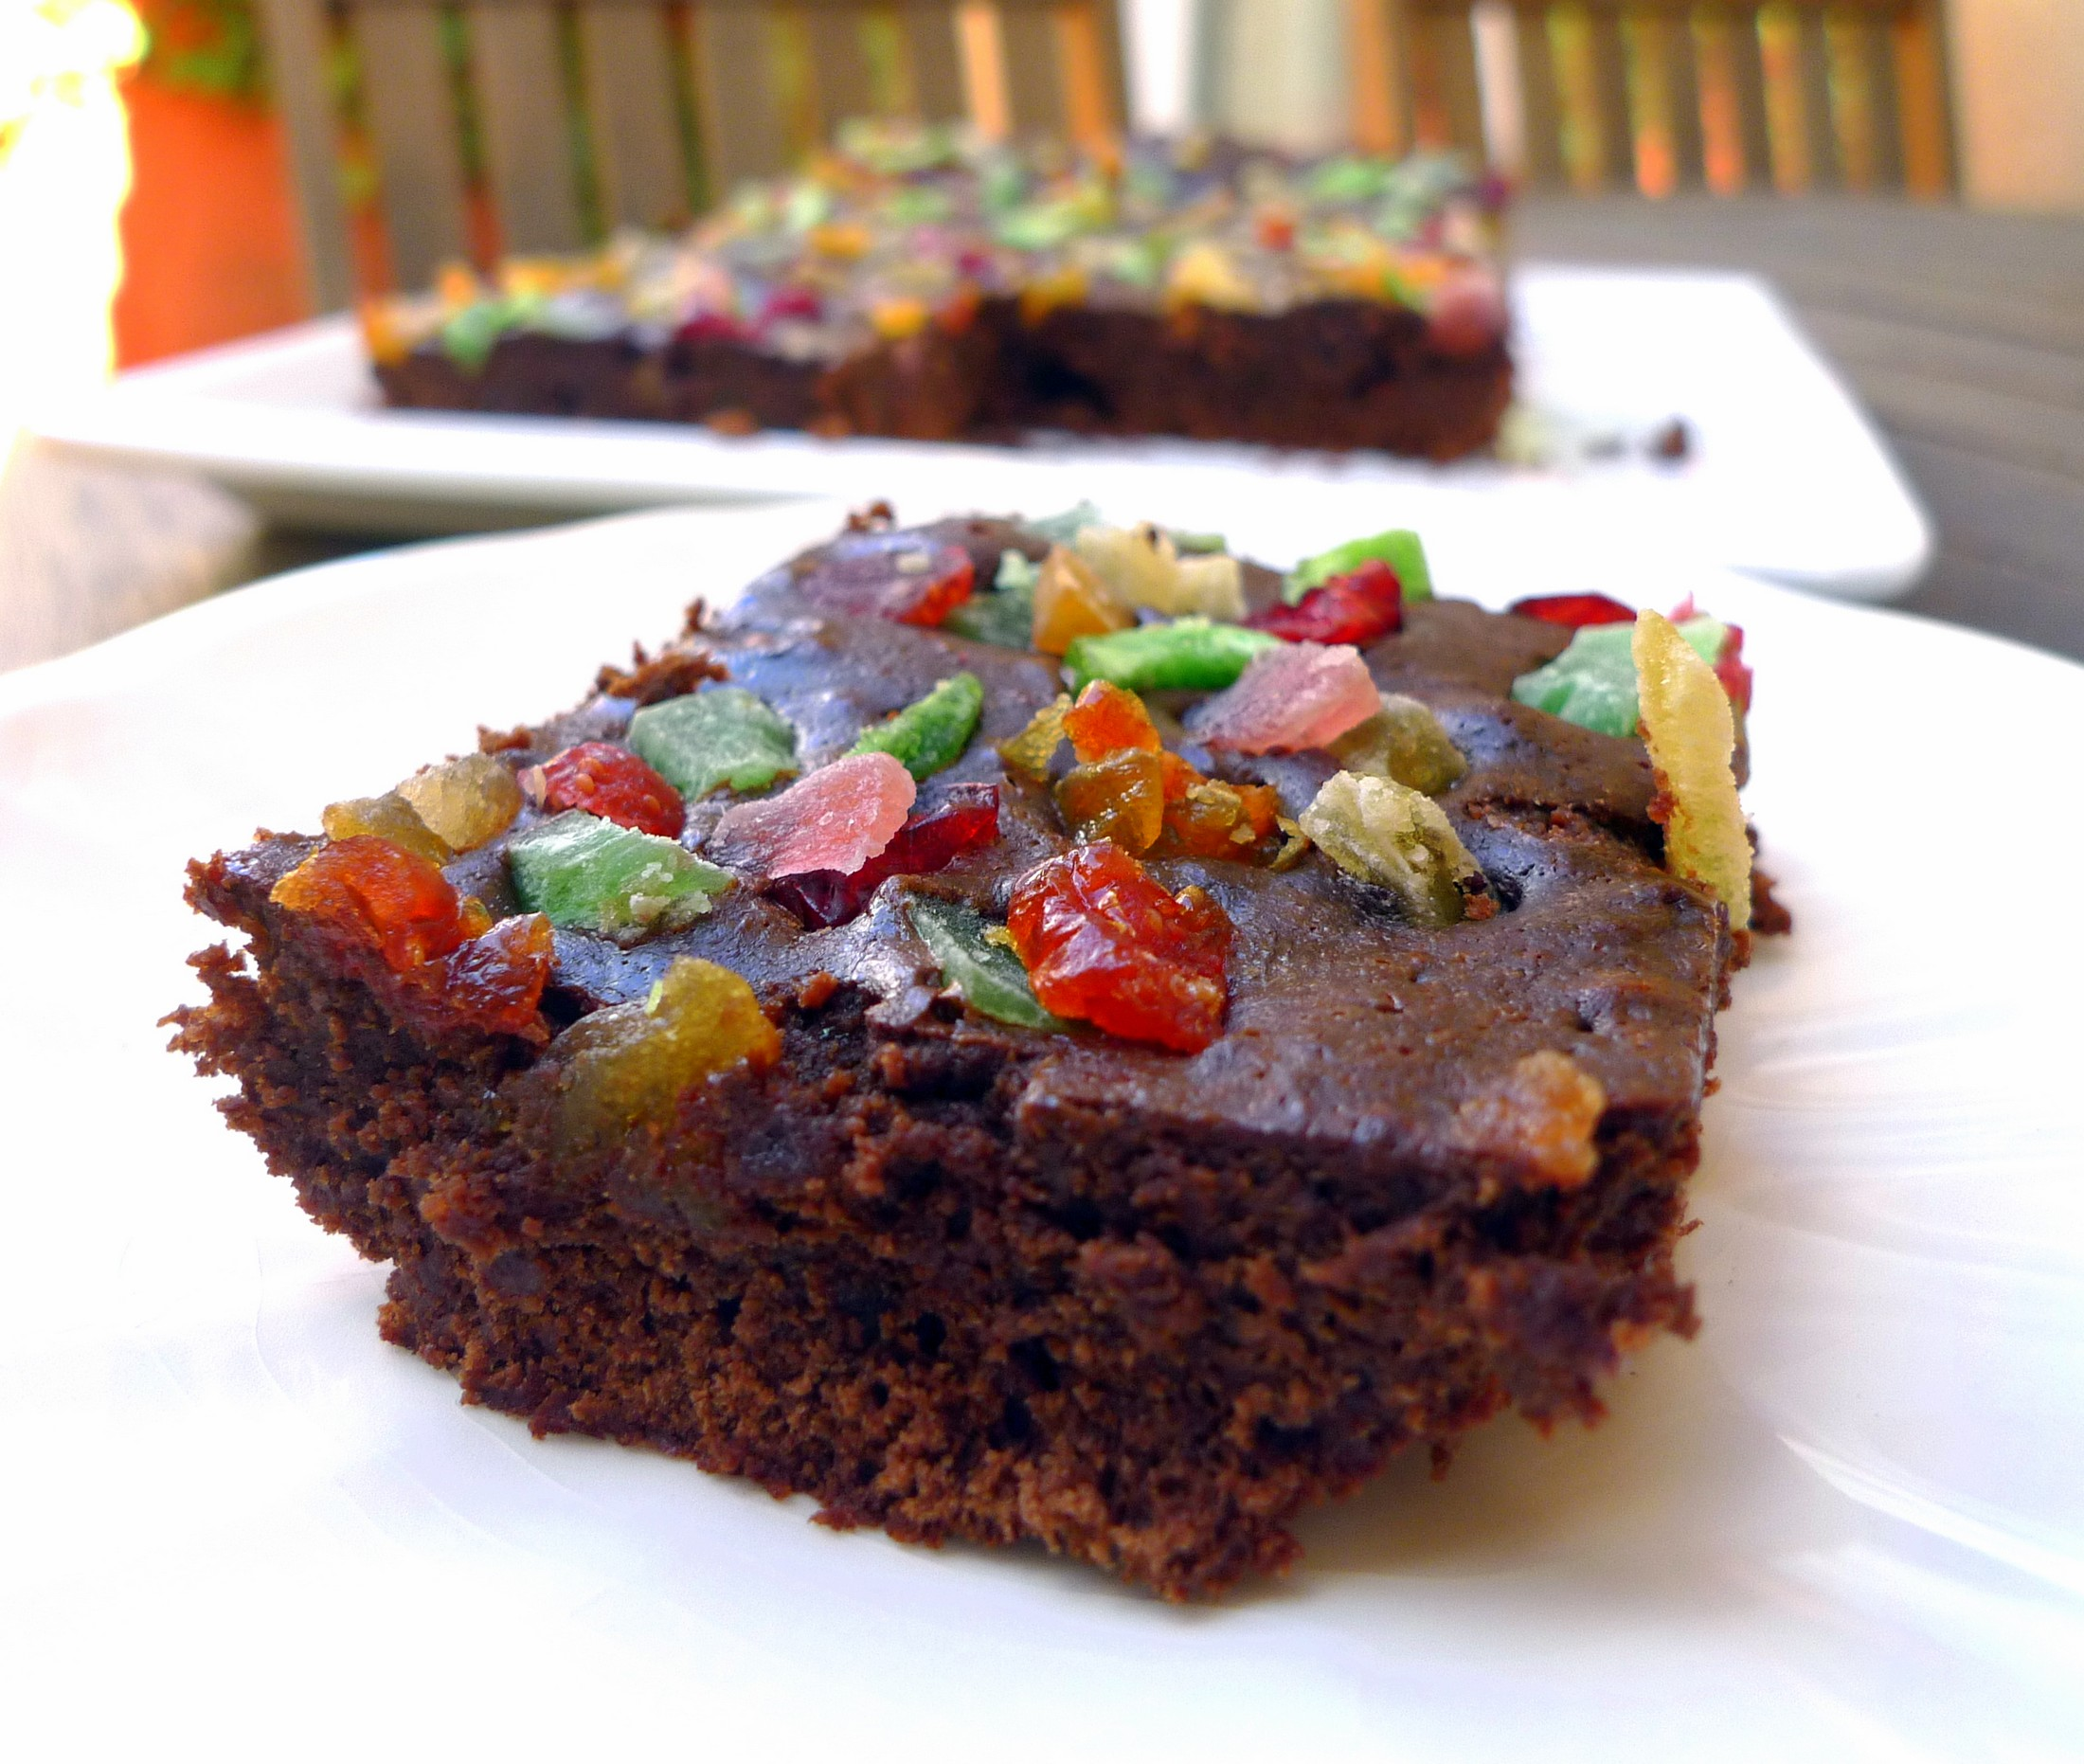 Brownie con chocolate y frutas